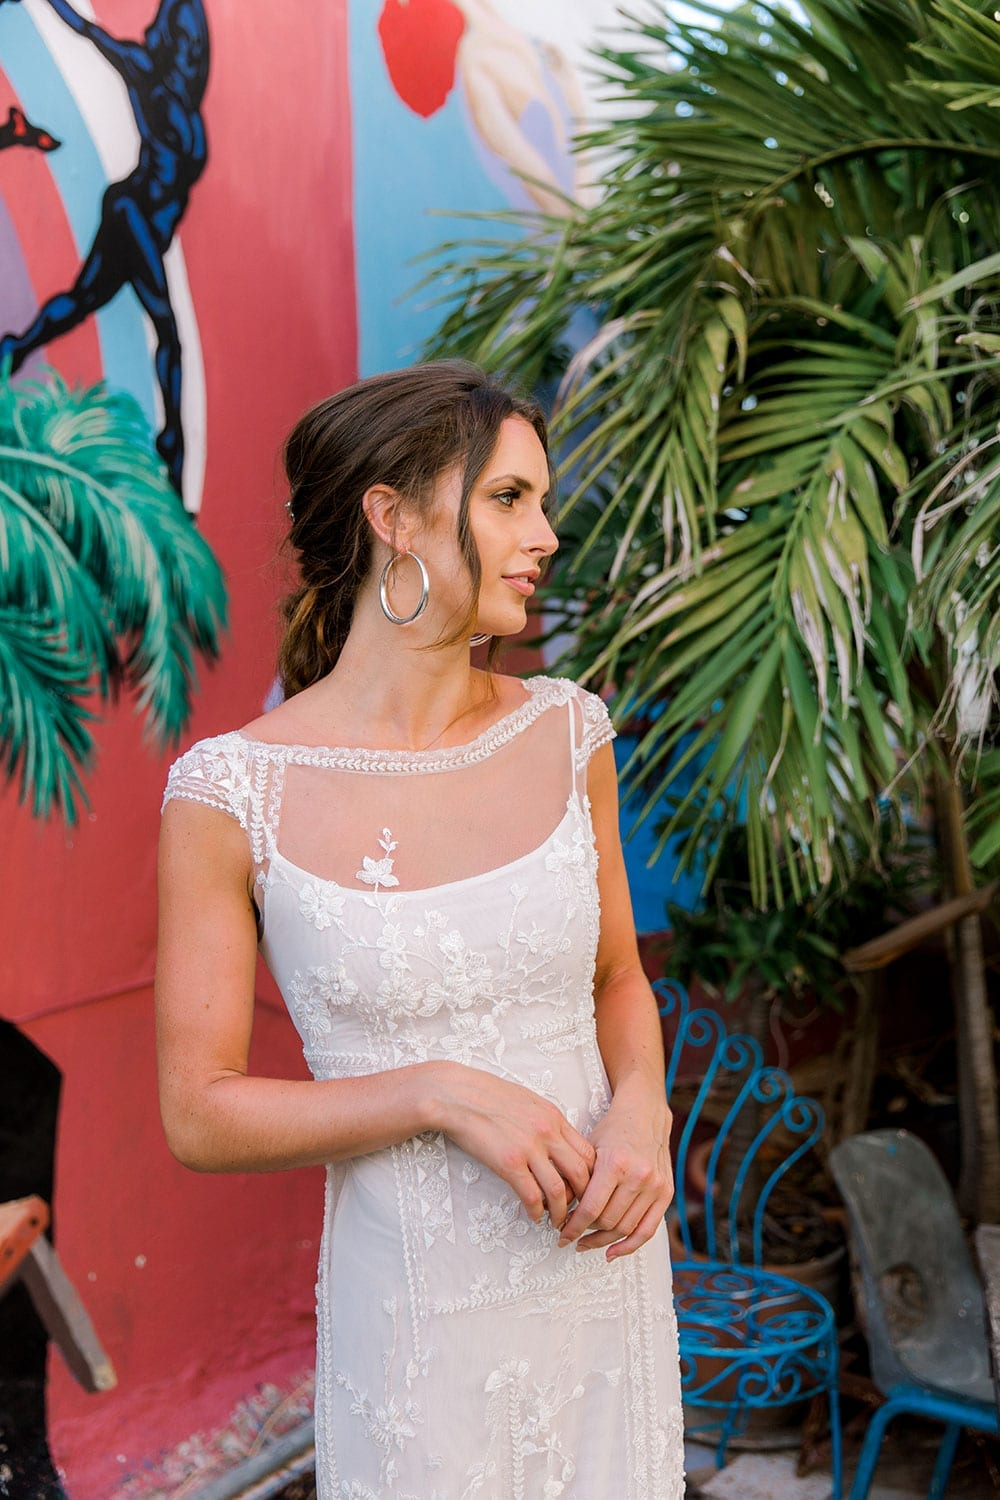 Model wearing Vinka Design Lola Wedding Dress, a Boat-Neck Lace Wedding Gown close up in the colourful and green streets of Havana